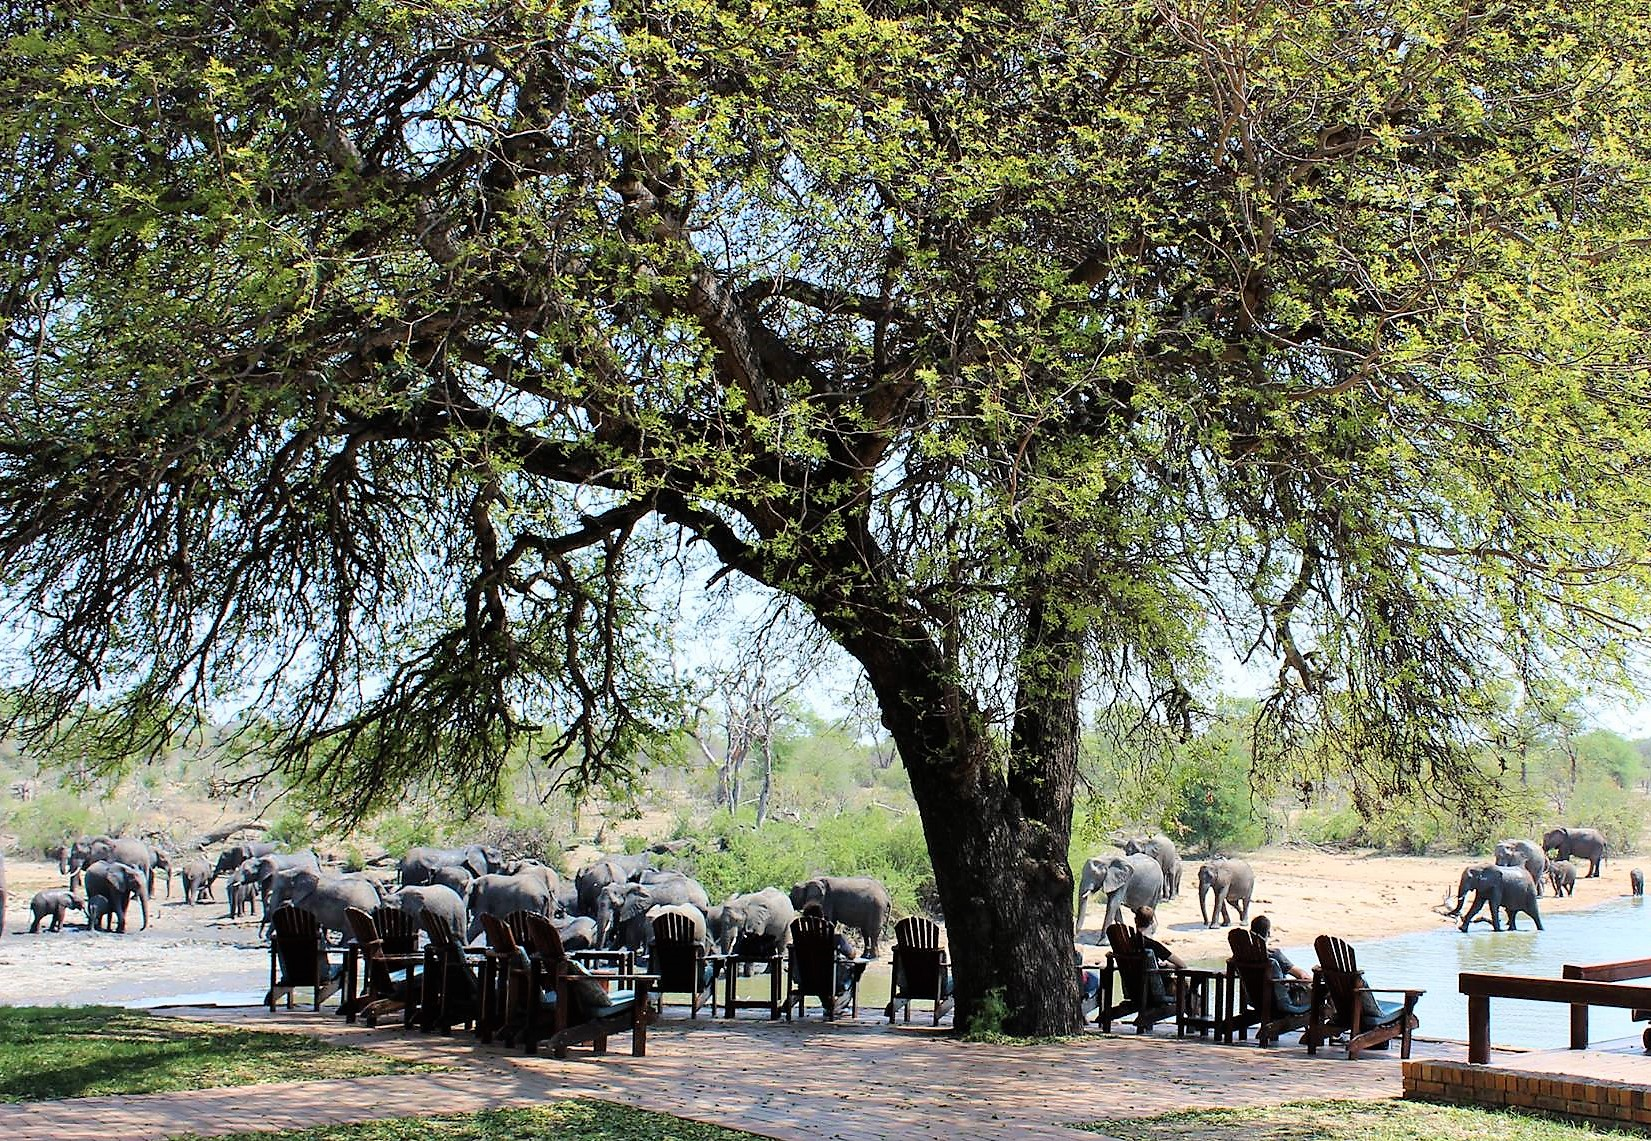 Elephants at Gomo Gomo waterhole